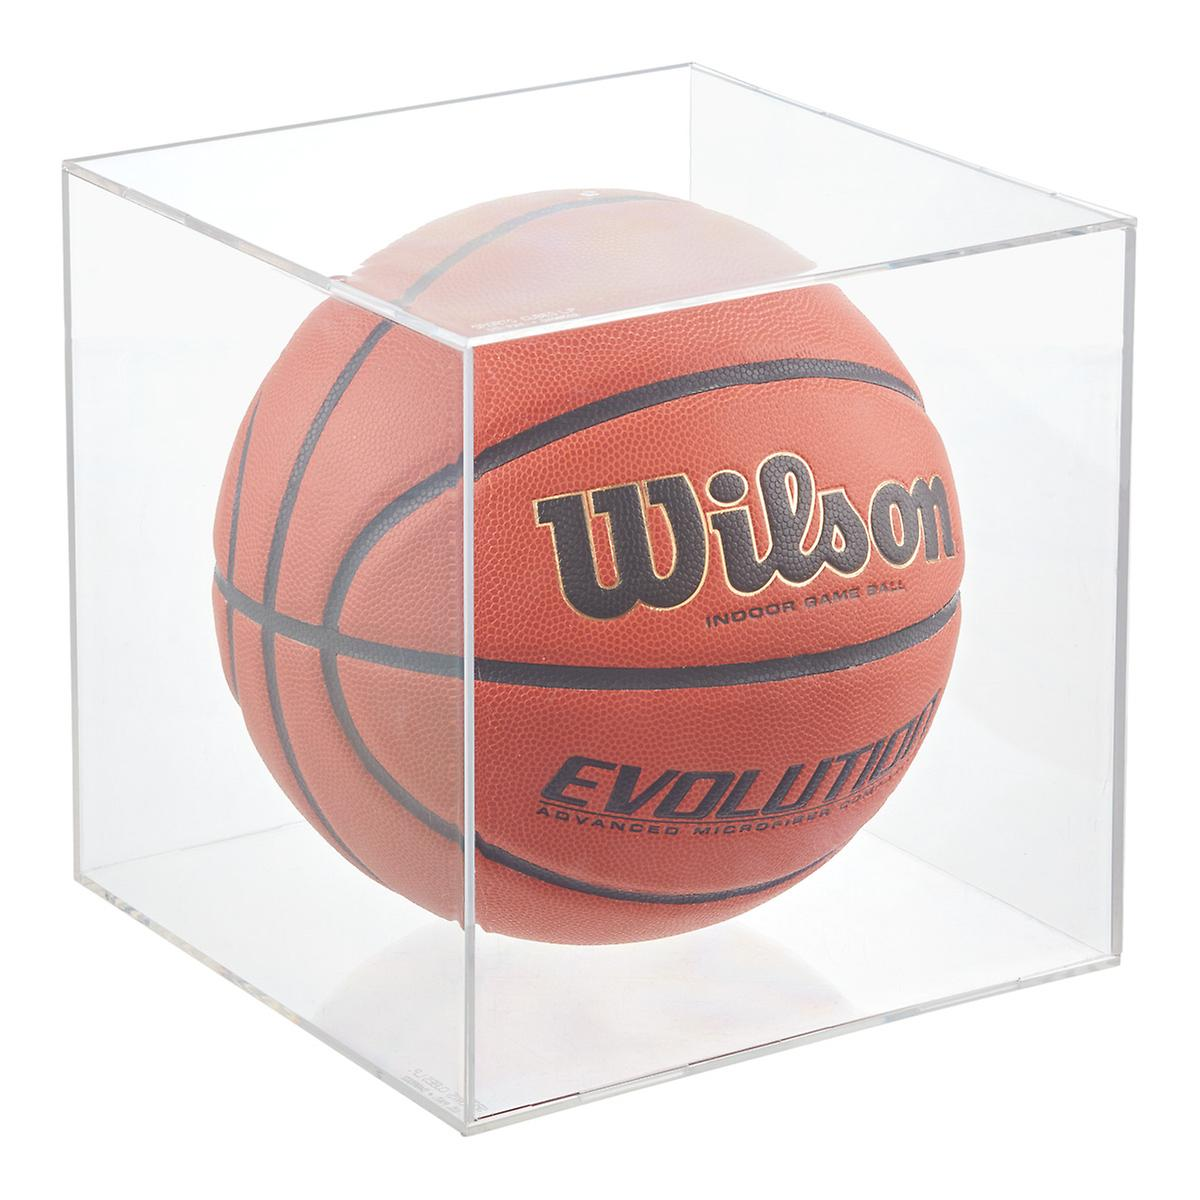 Basketball & Soccer Ball Display Cube   The Container Store Size Soccer Ball Rolling Distance